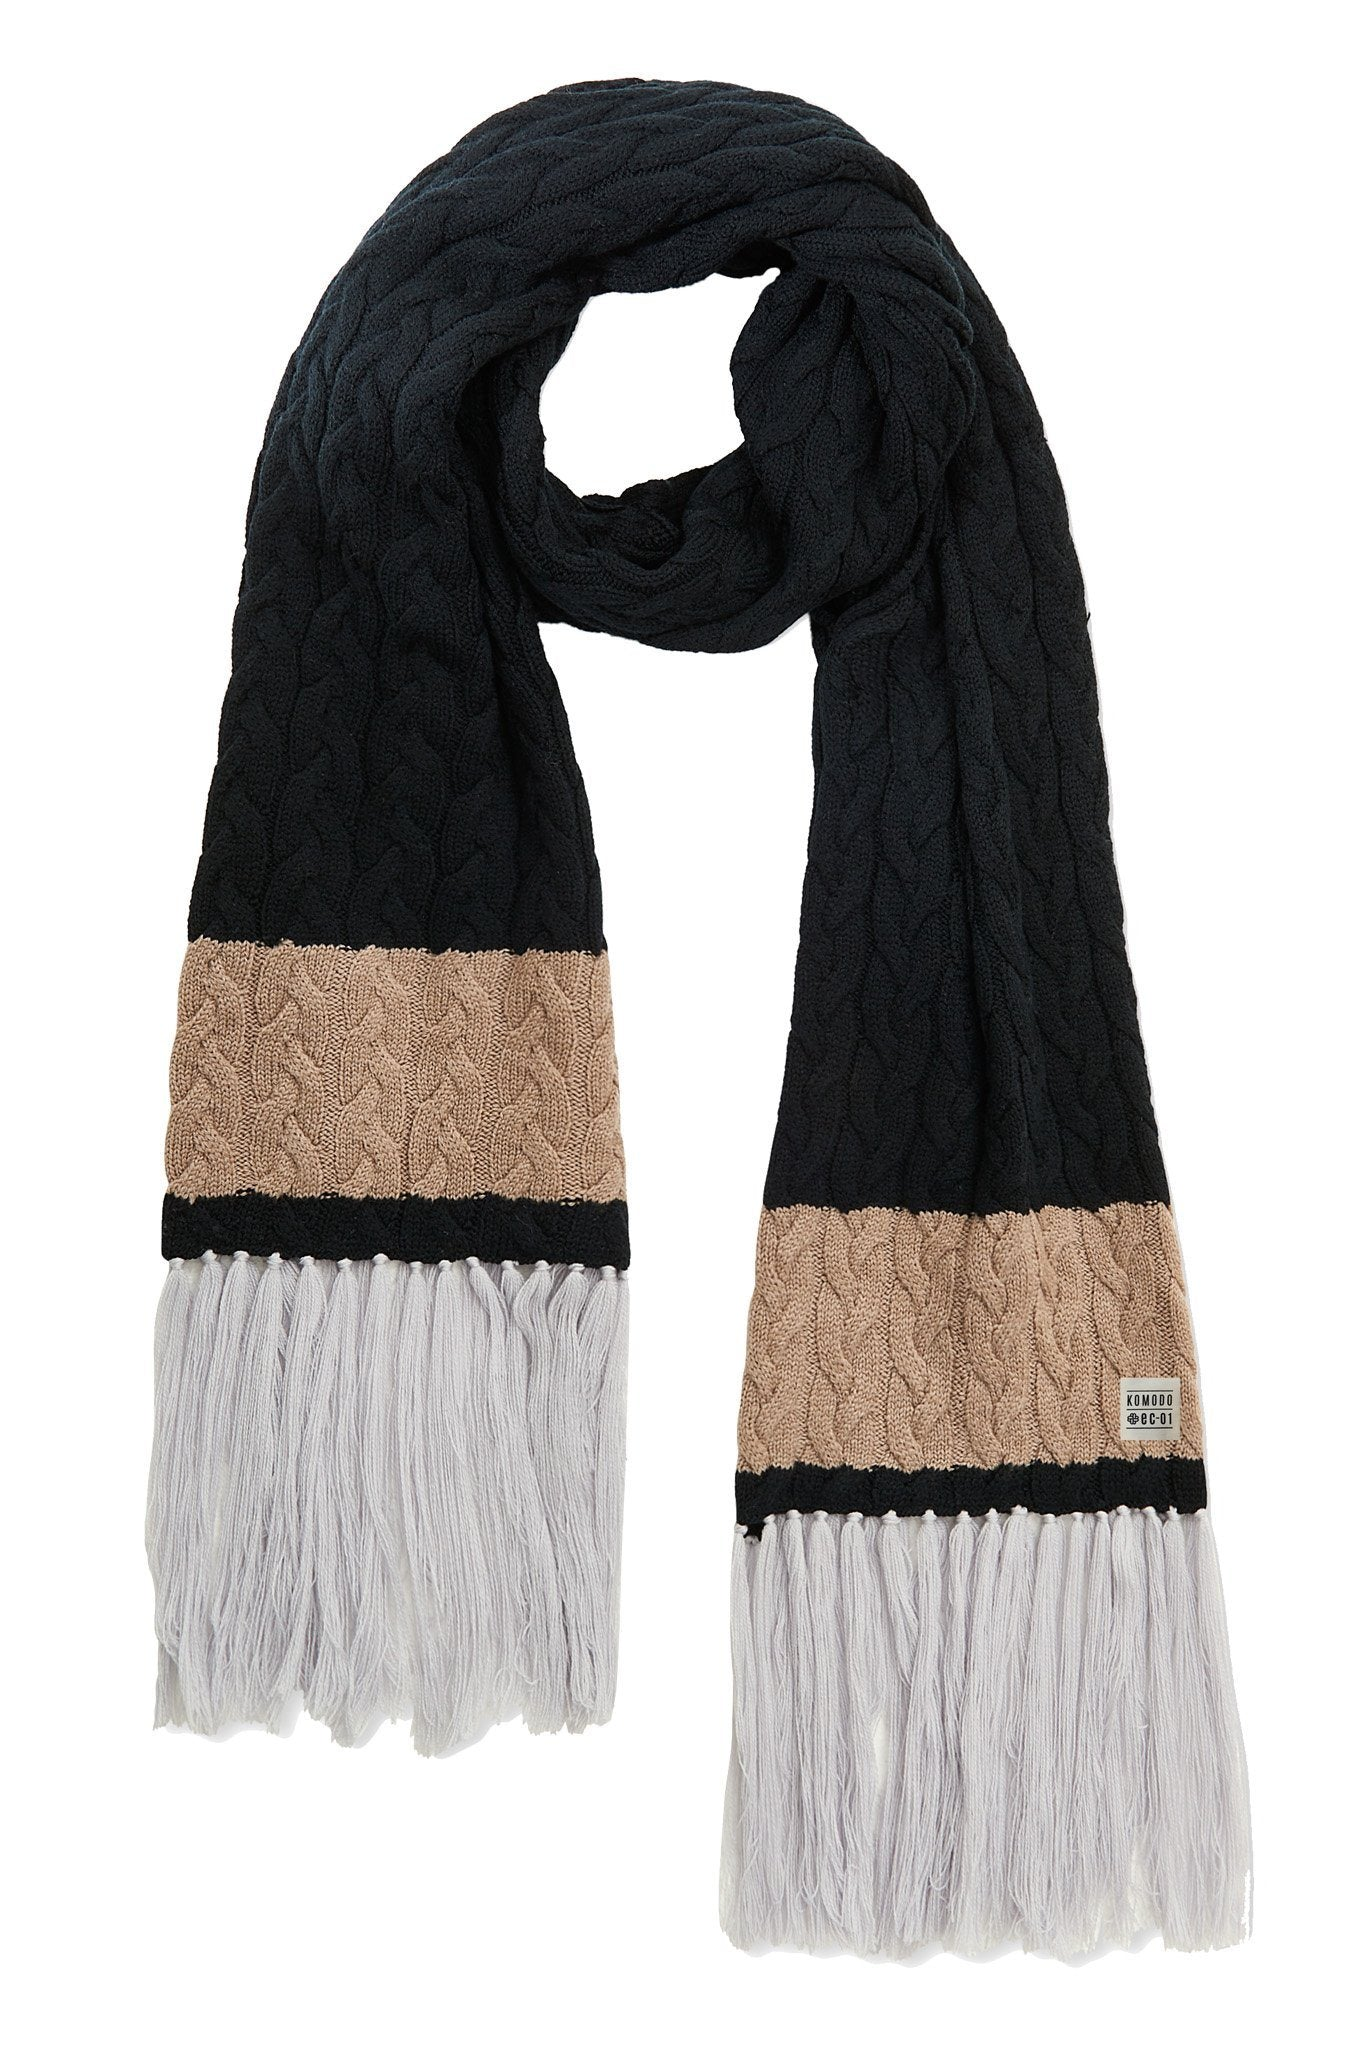 Accessories - LUA Merino Wool Scarf Black